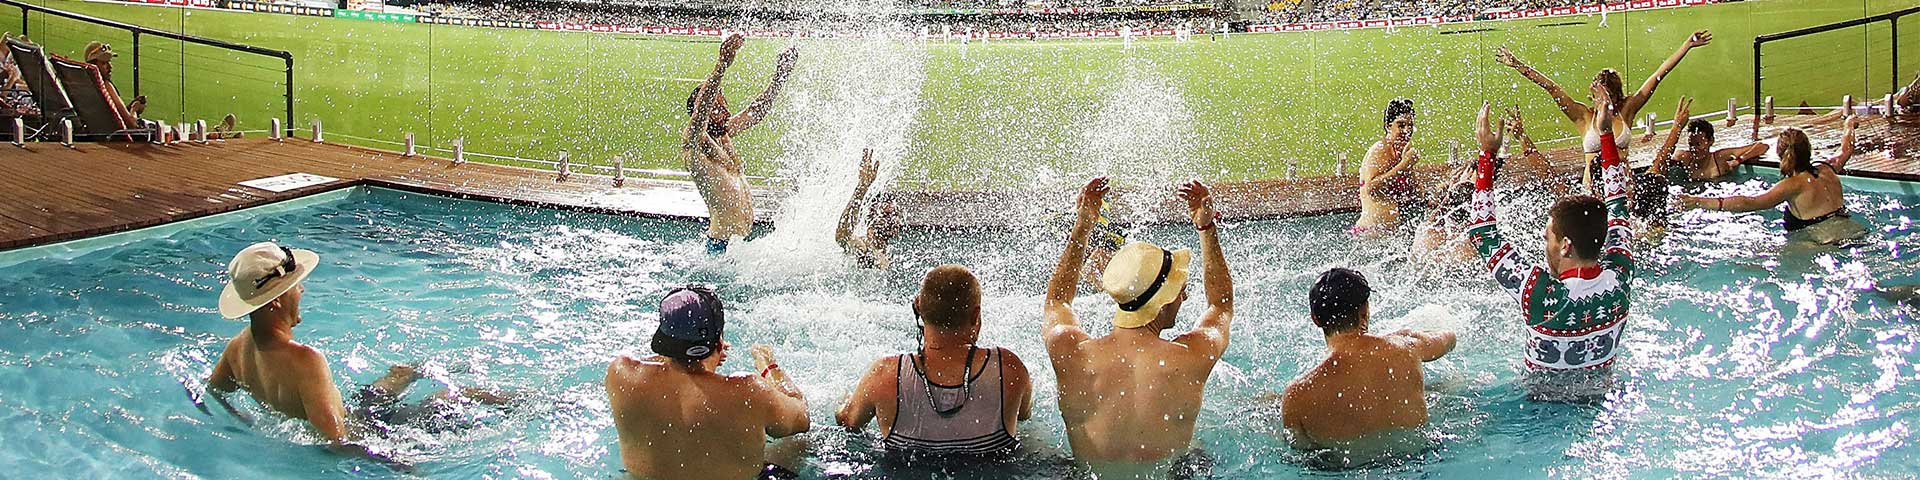 Pool for the Cricket at The Gabba